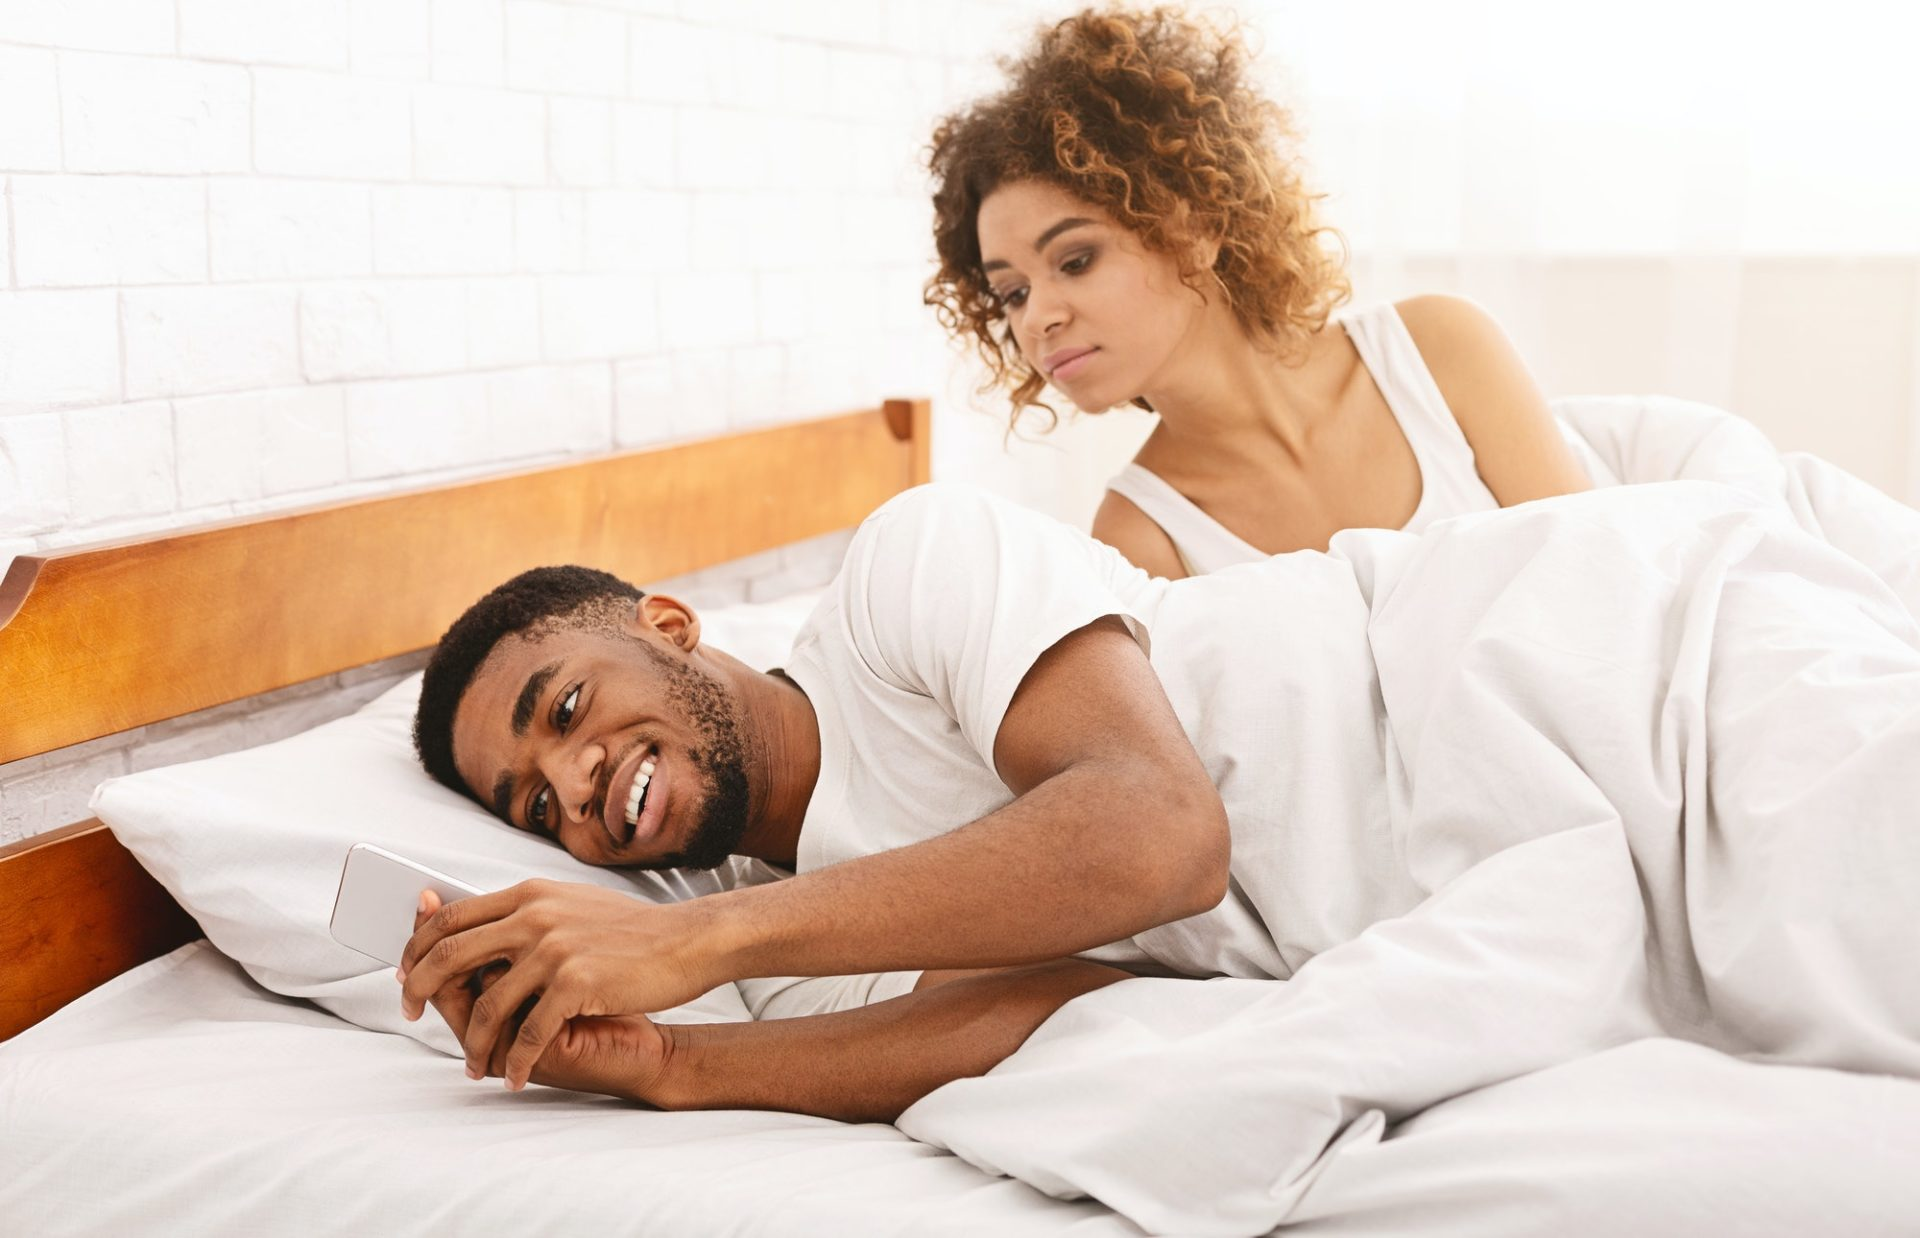 Cheating african man chatting with mistriss in family bed